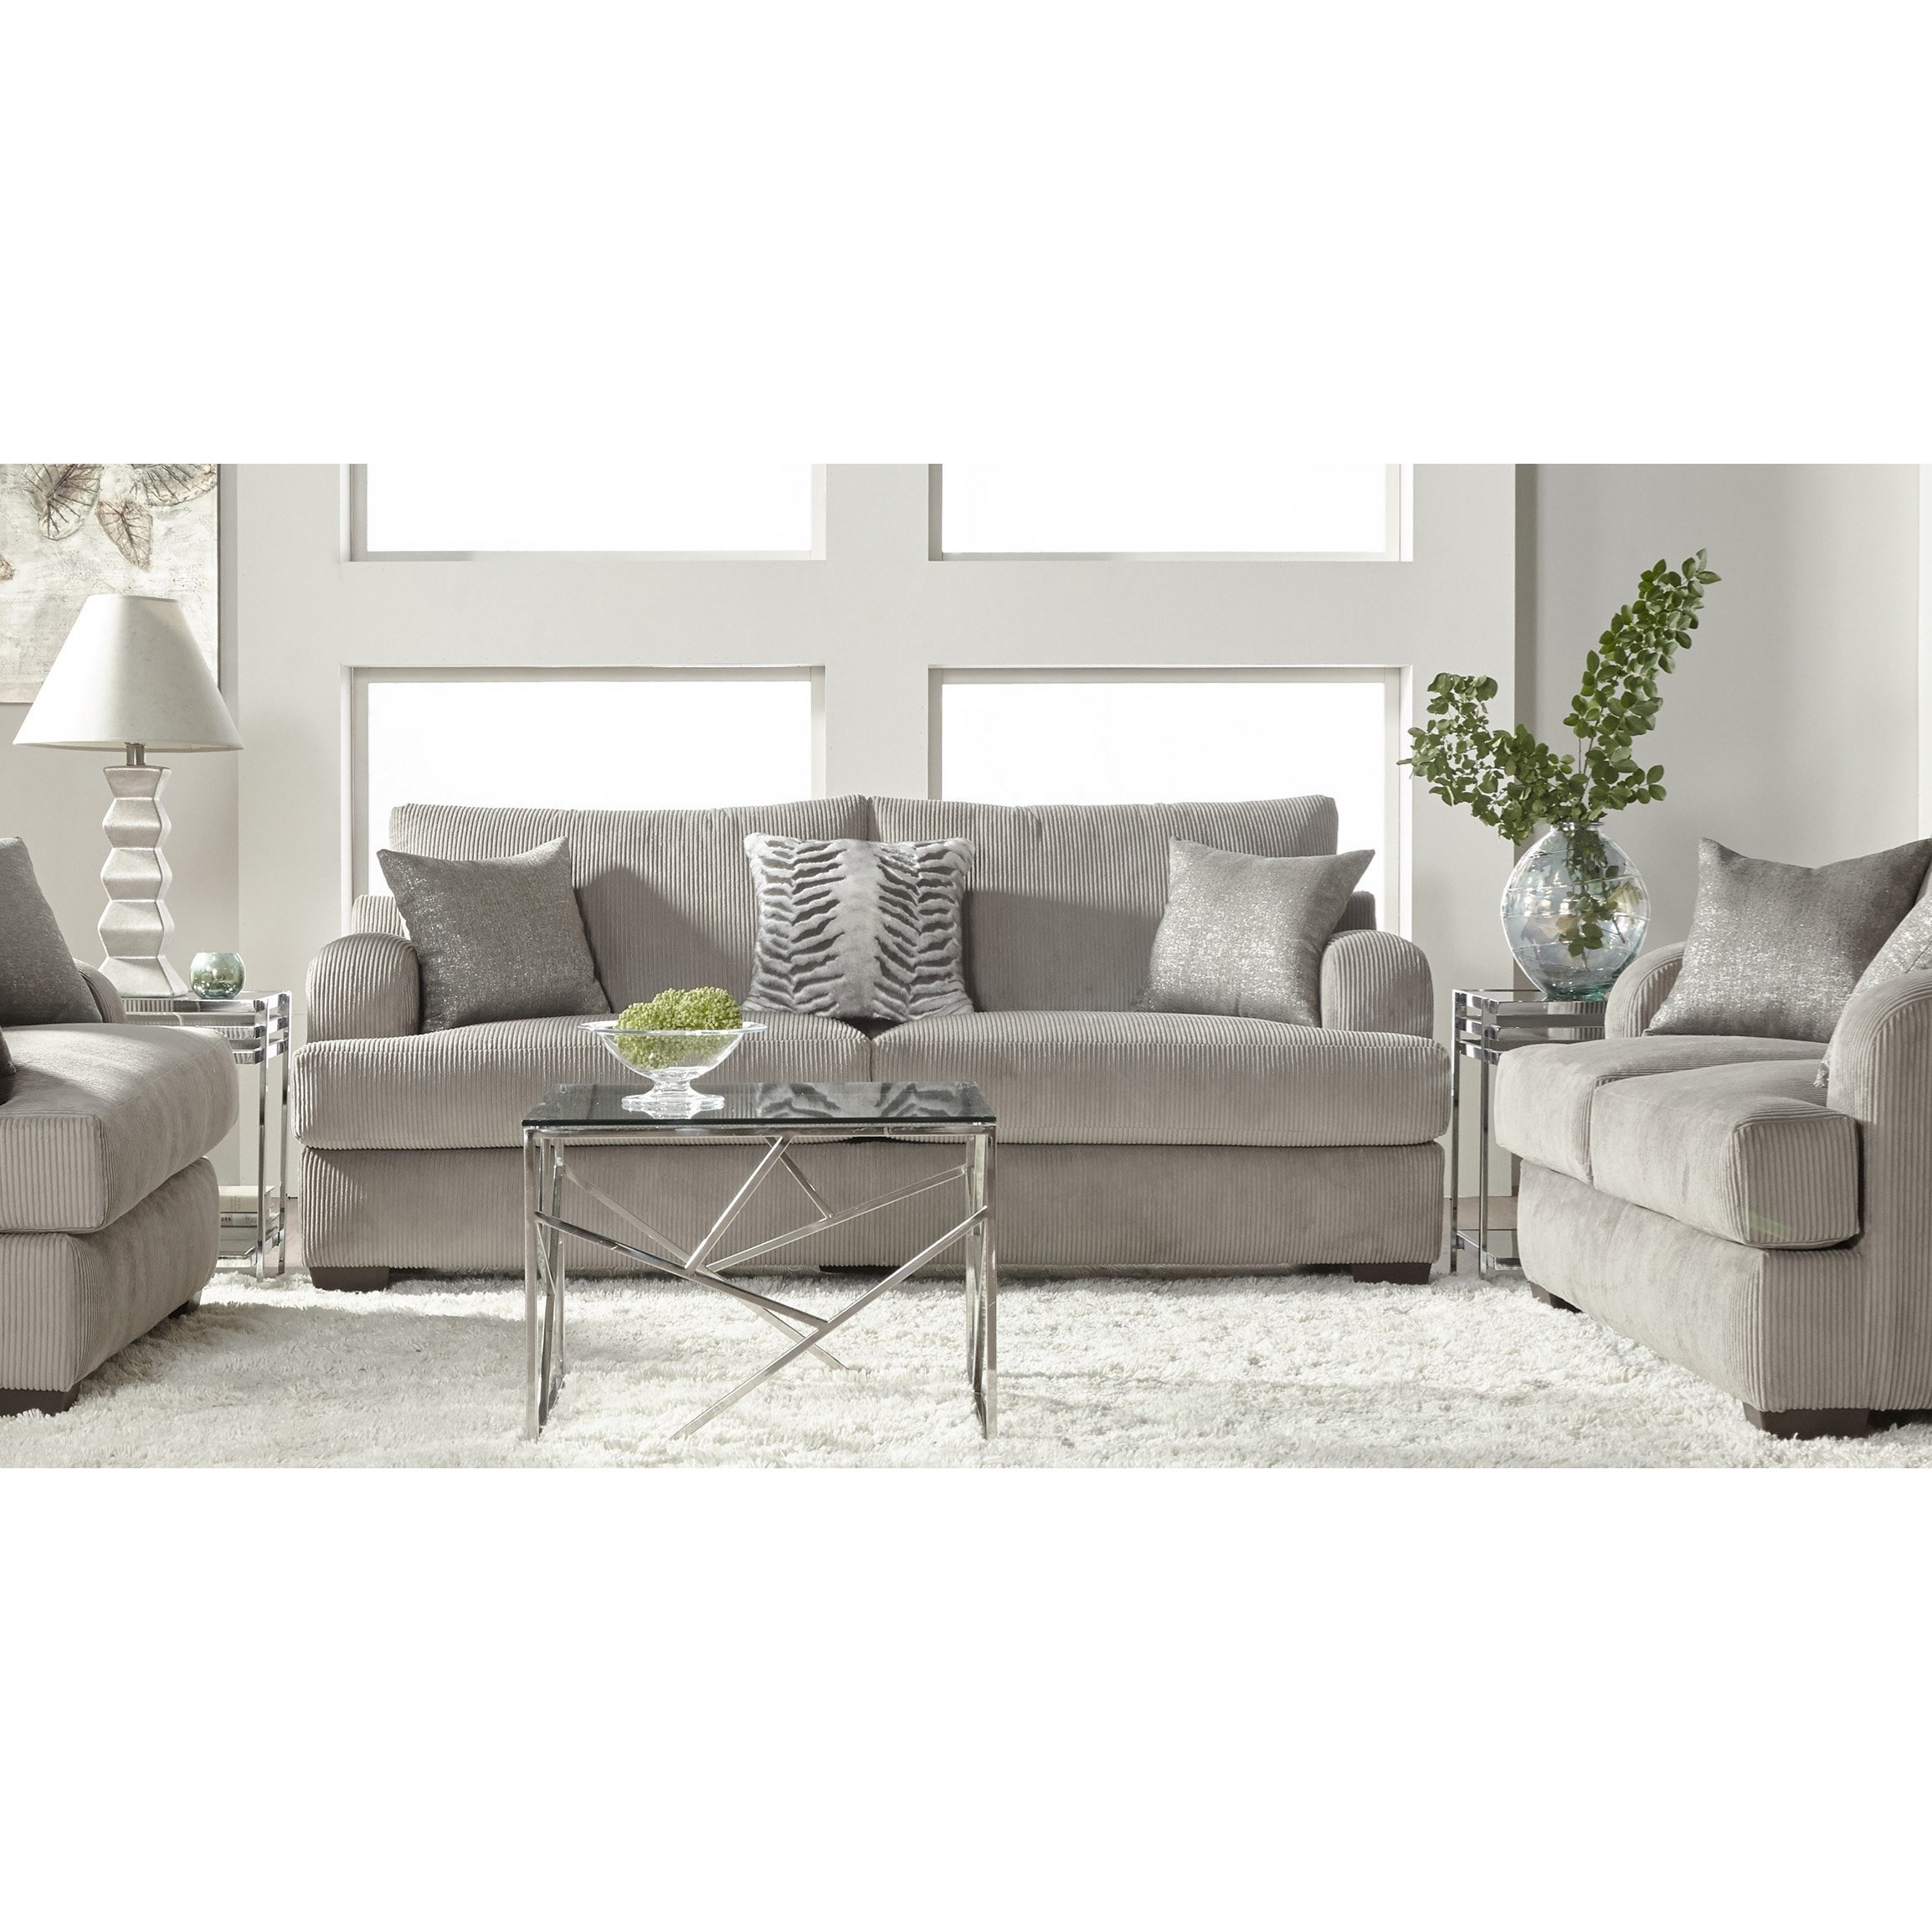 14100 Stationary Living Room Group by Serta Upholstery by Hughes Furniture at Rooms for Less